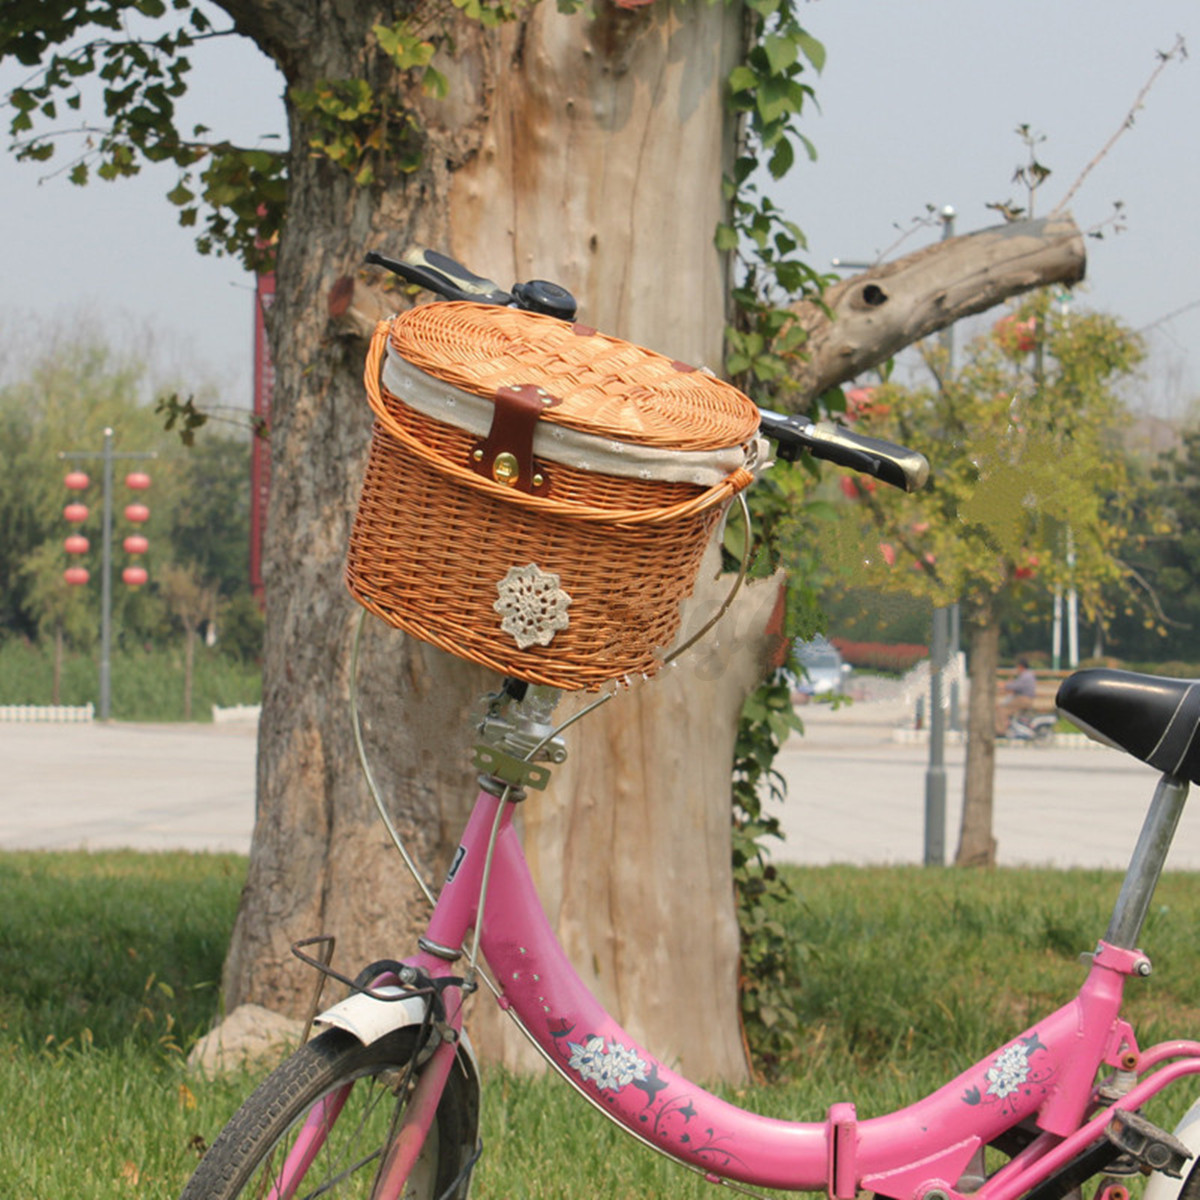 Handmade Bicycle Baskets : Handmade willow wicker bicycle front basket w lid handle